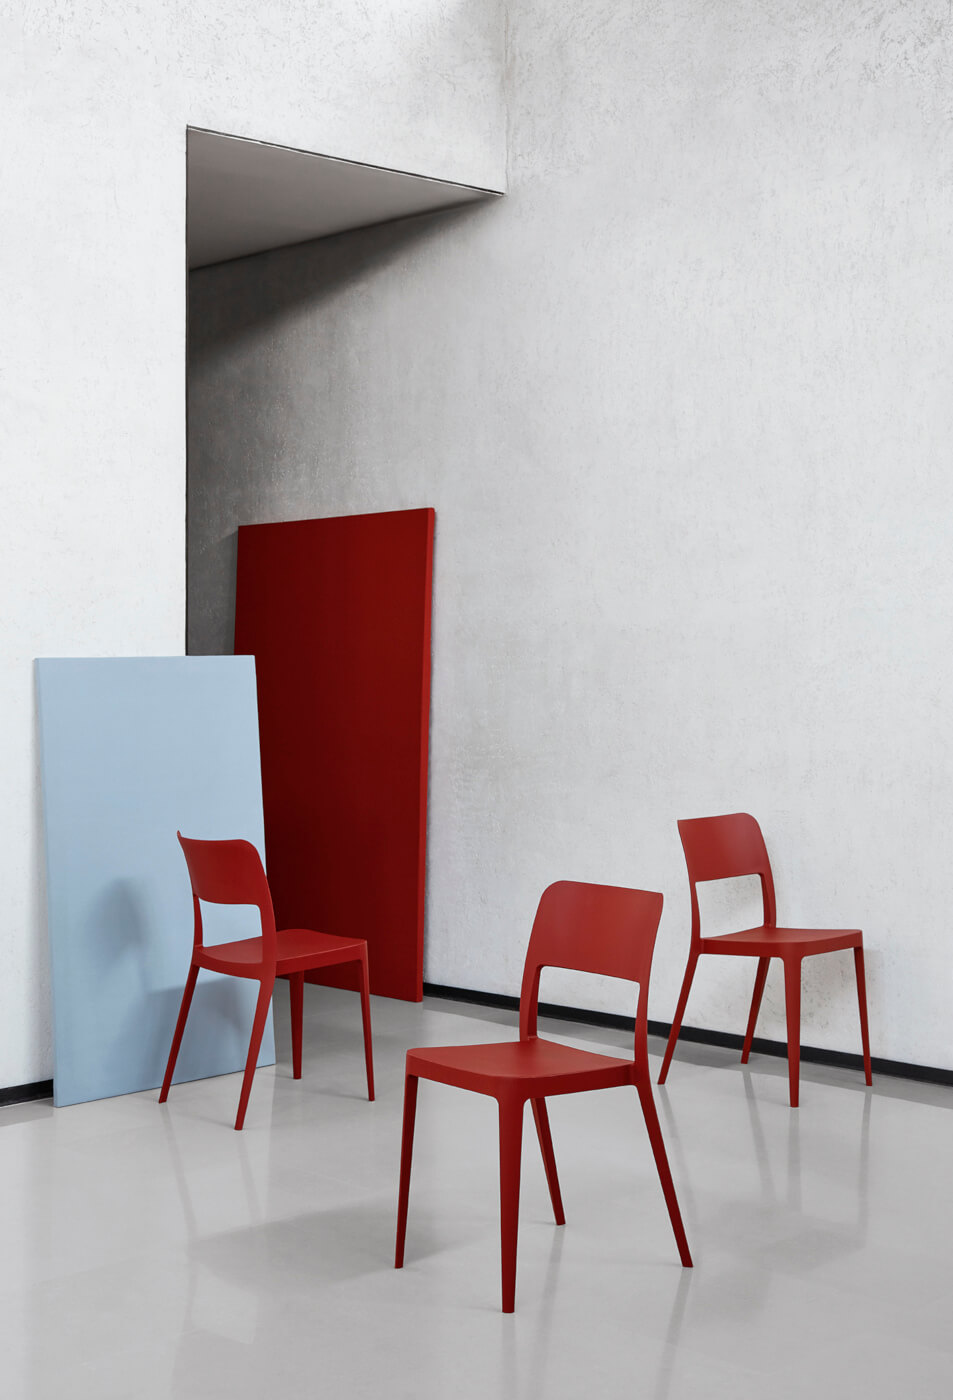 Nenè design chair entirely made of red polypropylene